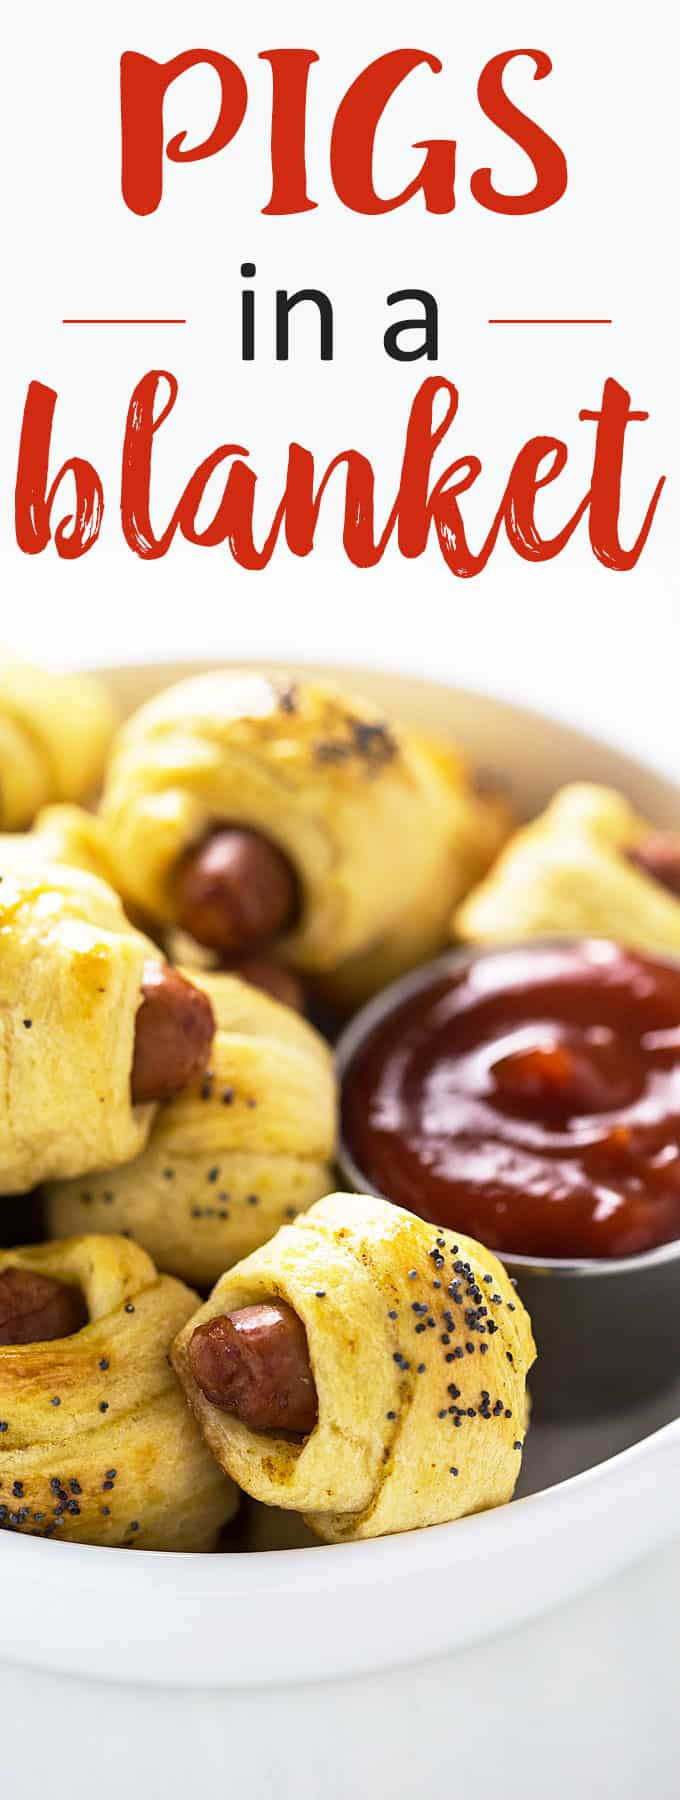 Pigs in a Blanket - This no-fuss, bite-sized appetizer is always a crowd pleaser!